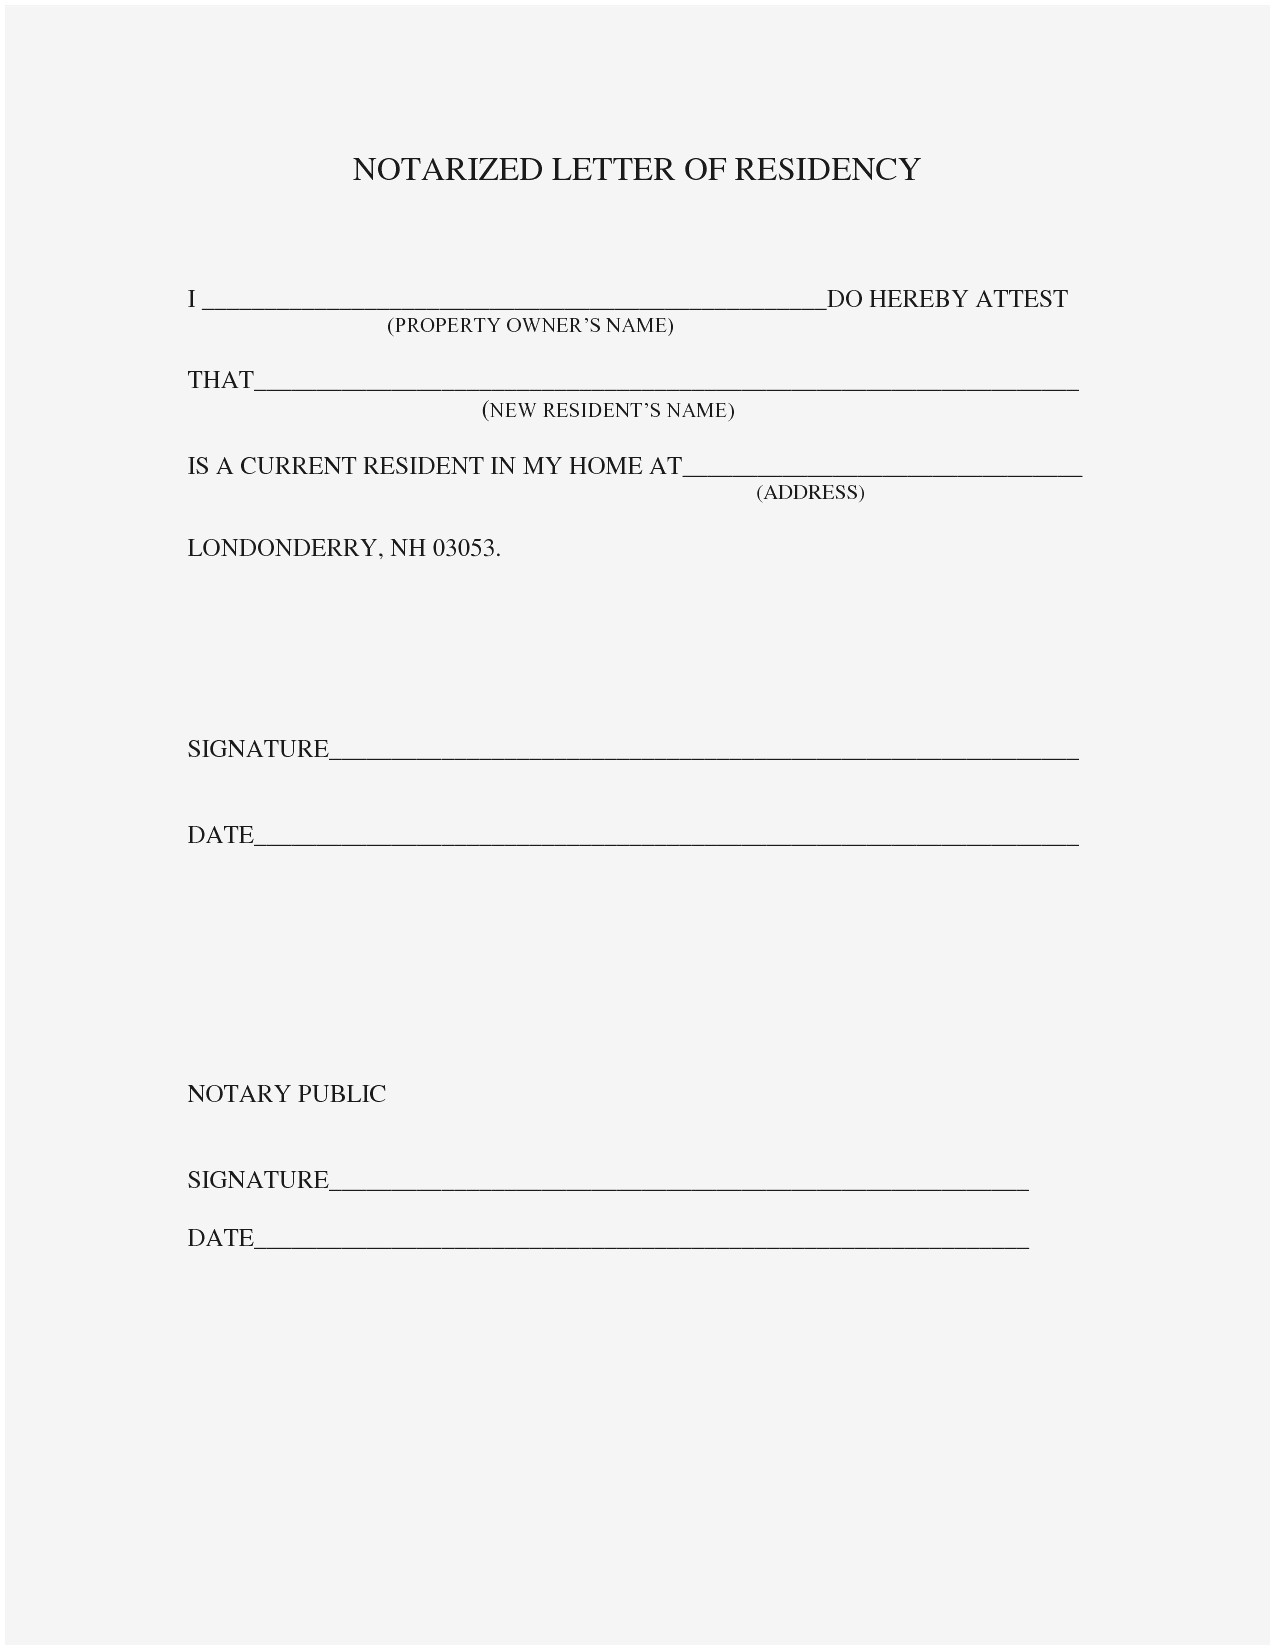 Notarized Letter Template for Residency - Printable Notarized Letter Residency Template Samples How to